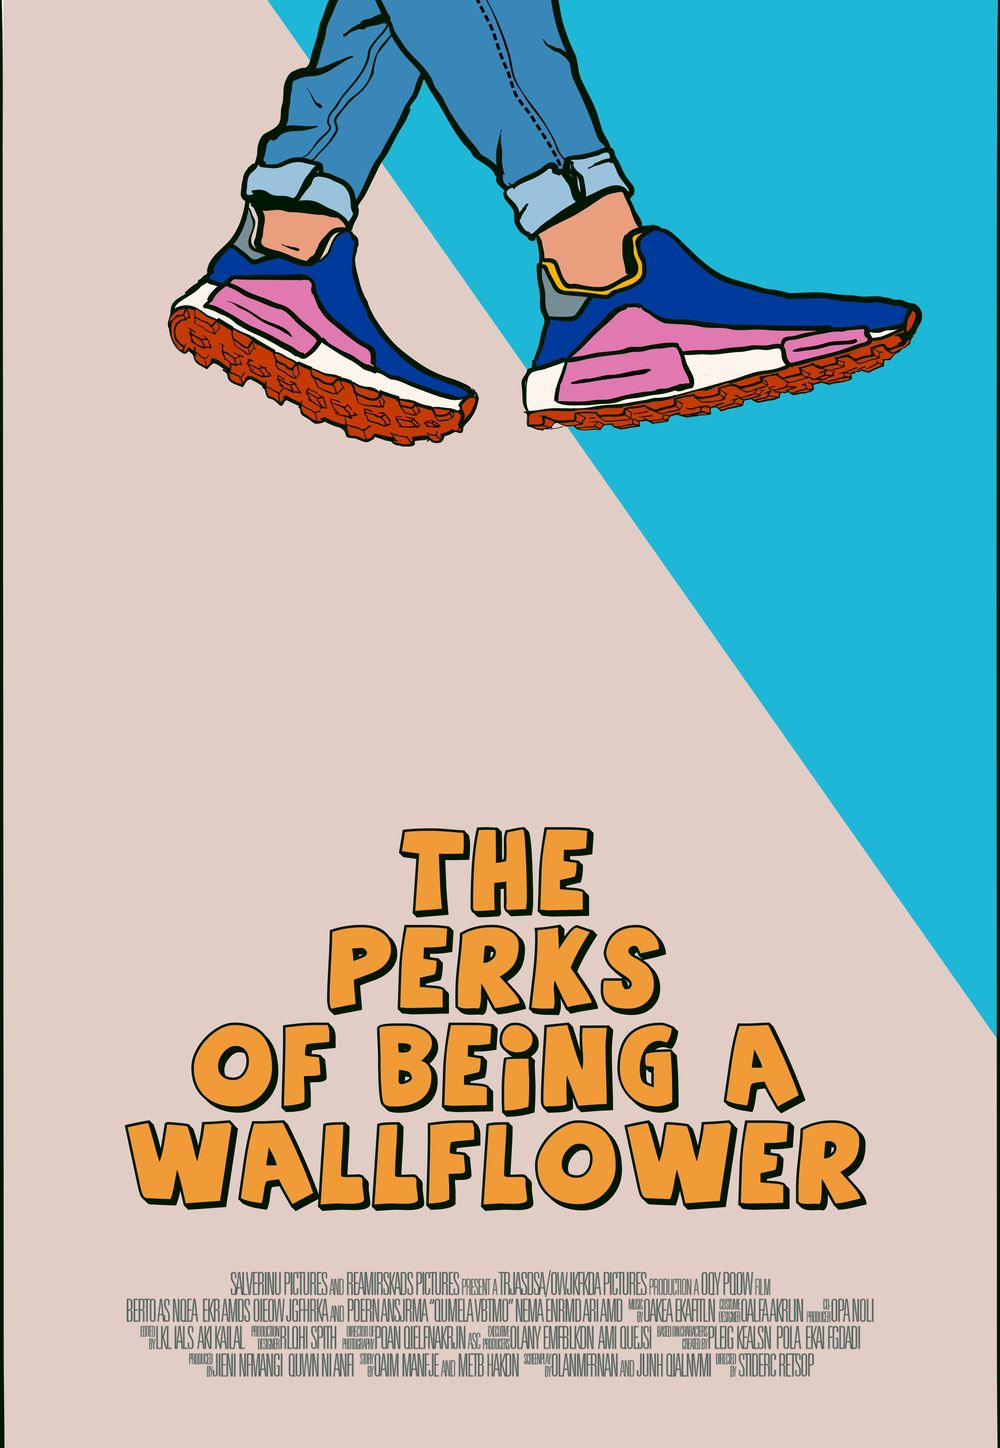 The Perks of Being a Wallflower - image 4 - student project